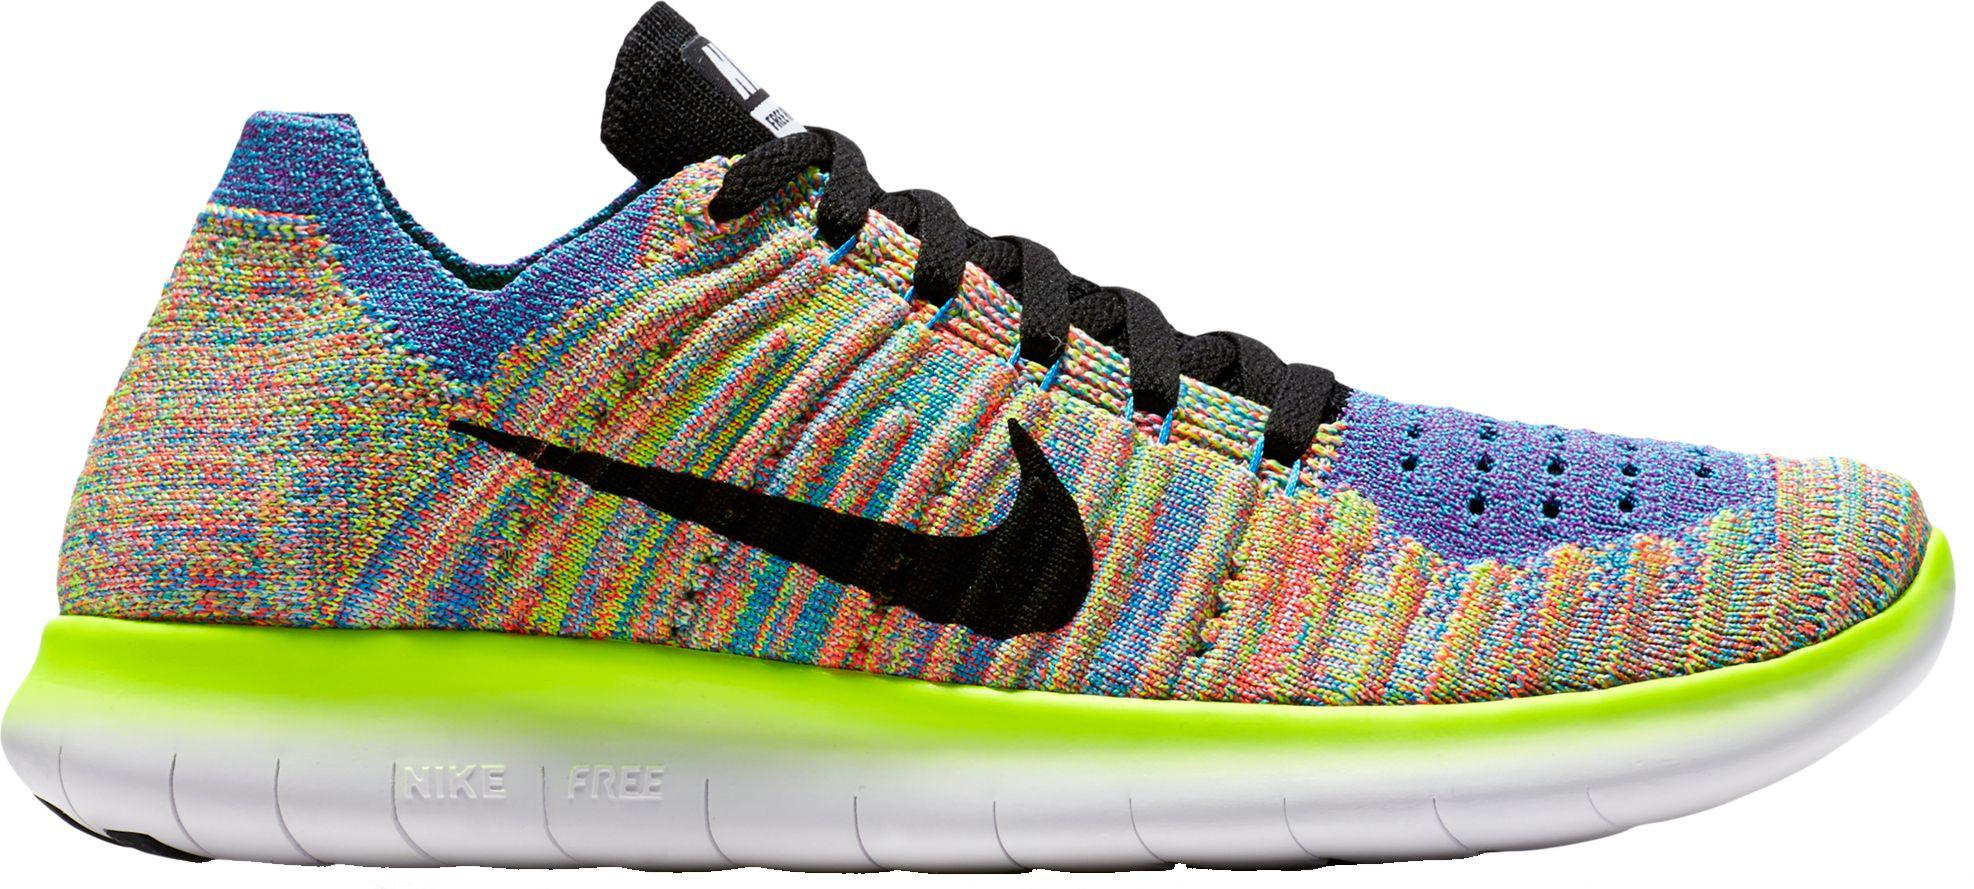 573b5e31bd4 Nike - Multicolor Free Rn Flyknit Running Shoes for Men - Lyst